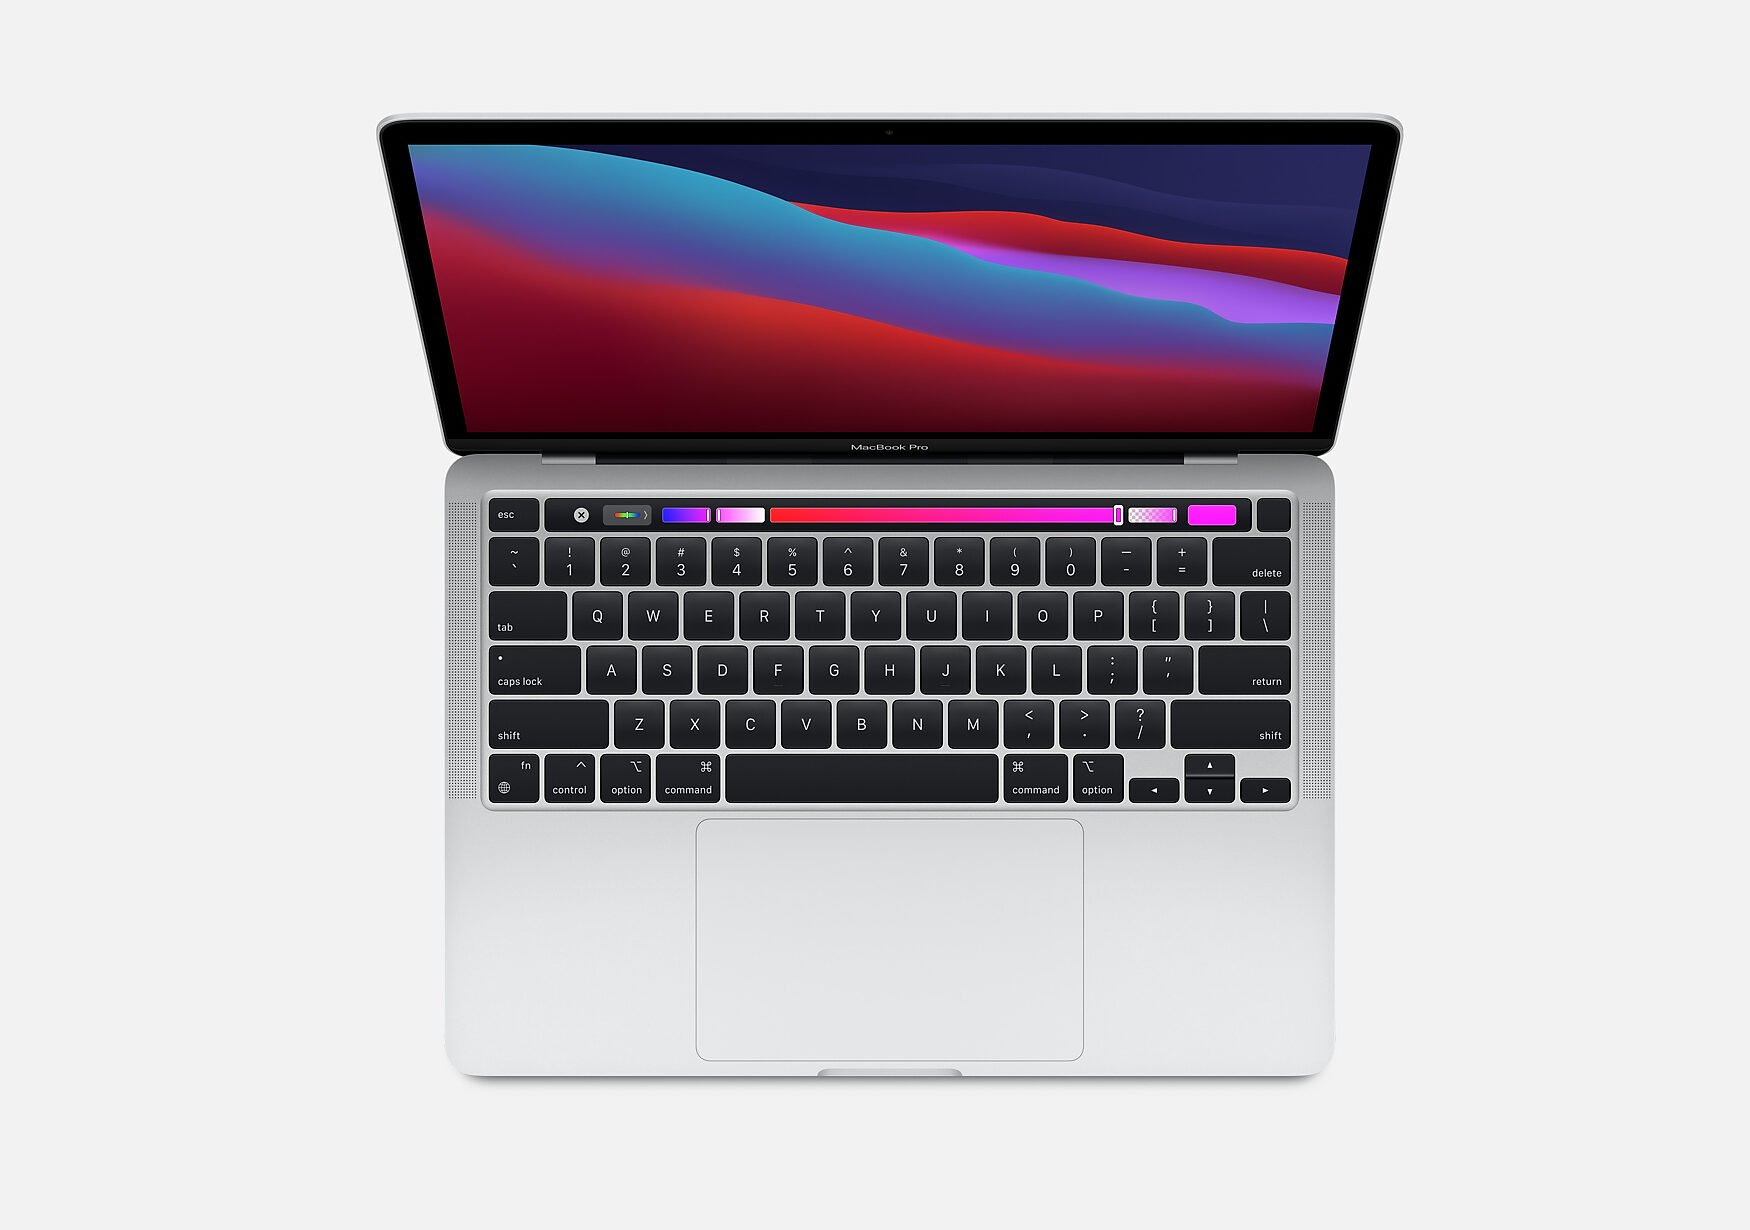 Apple MacBook Pro might see significant gains with next M1 chip